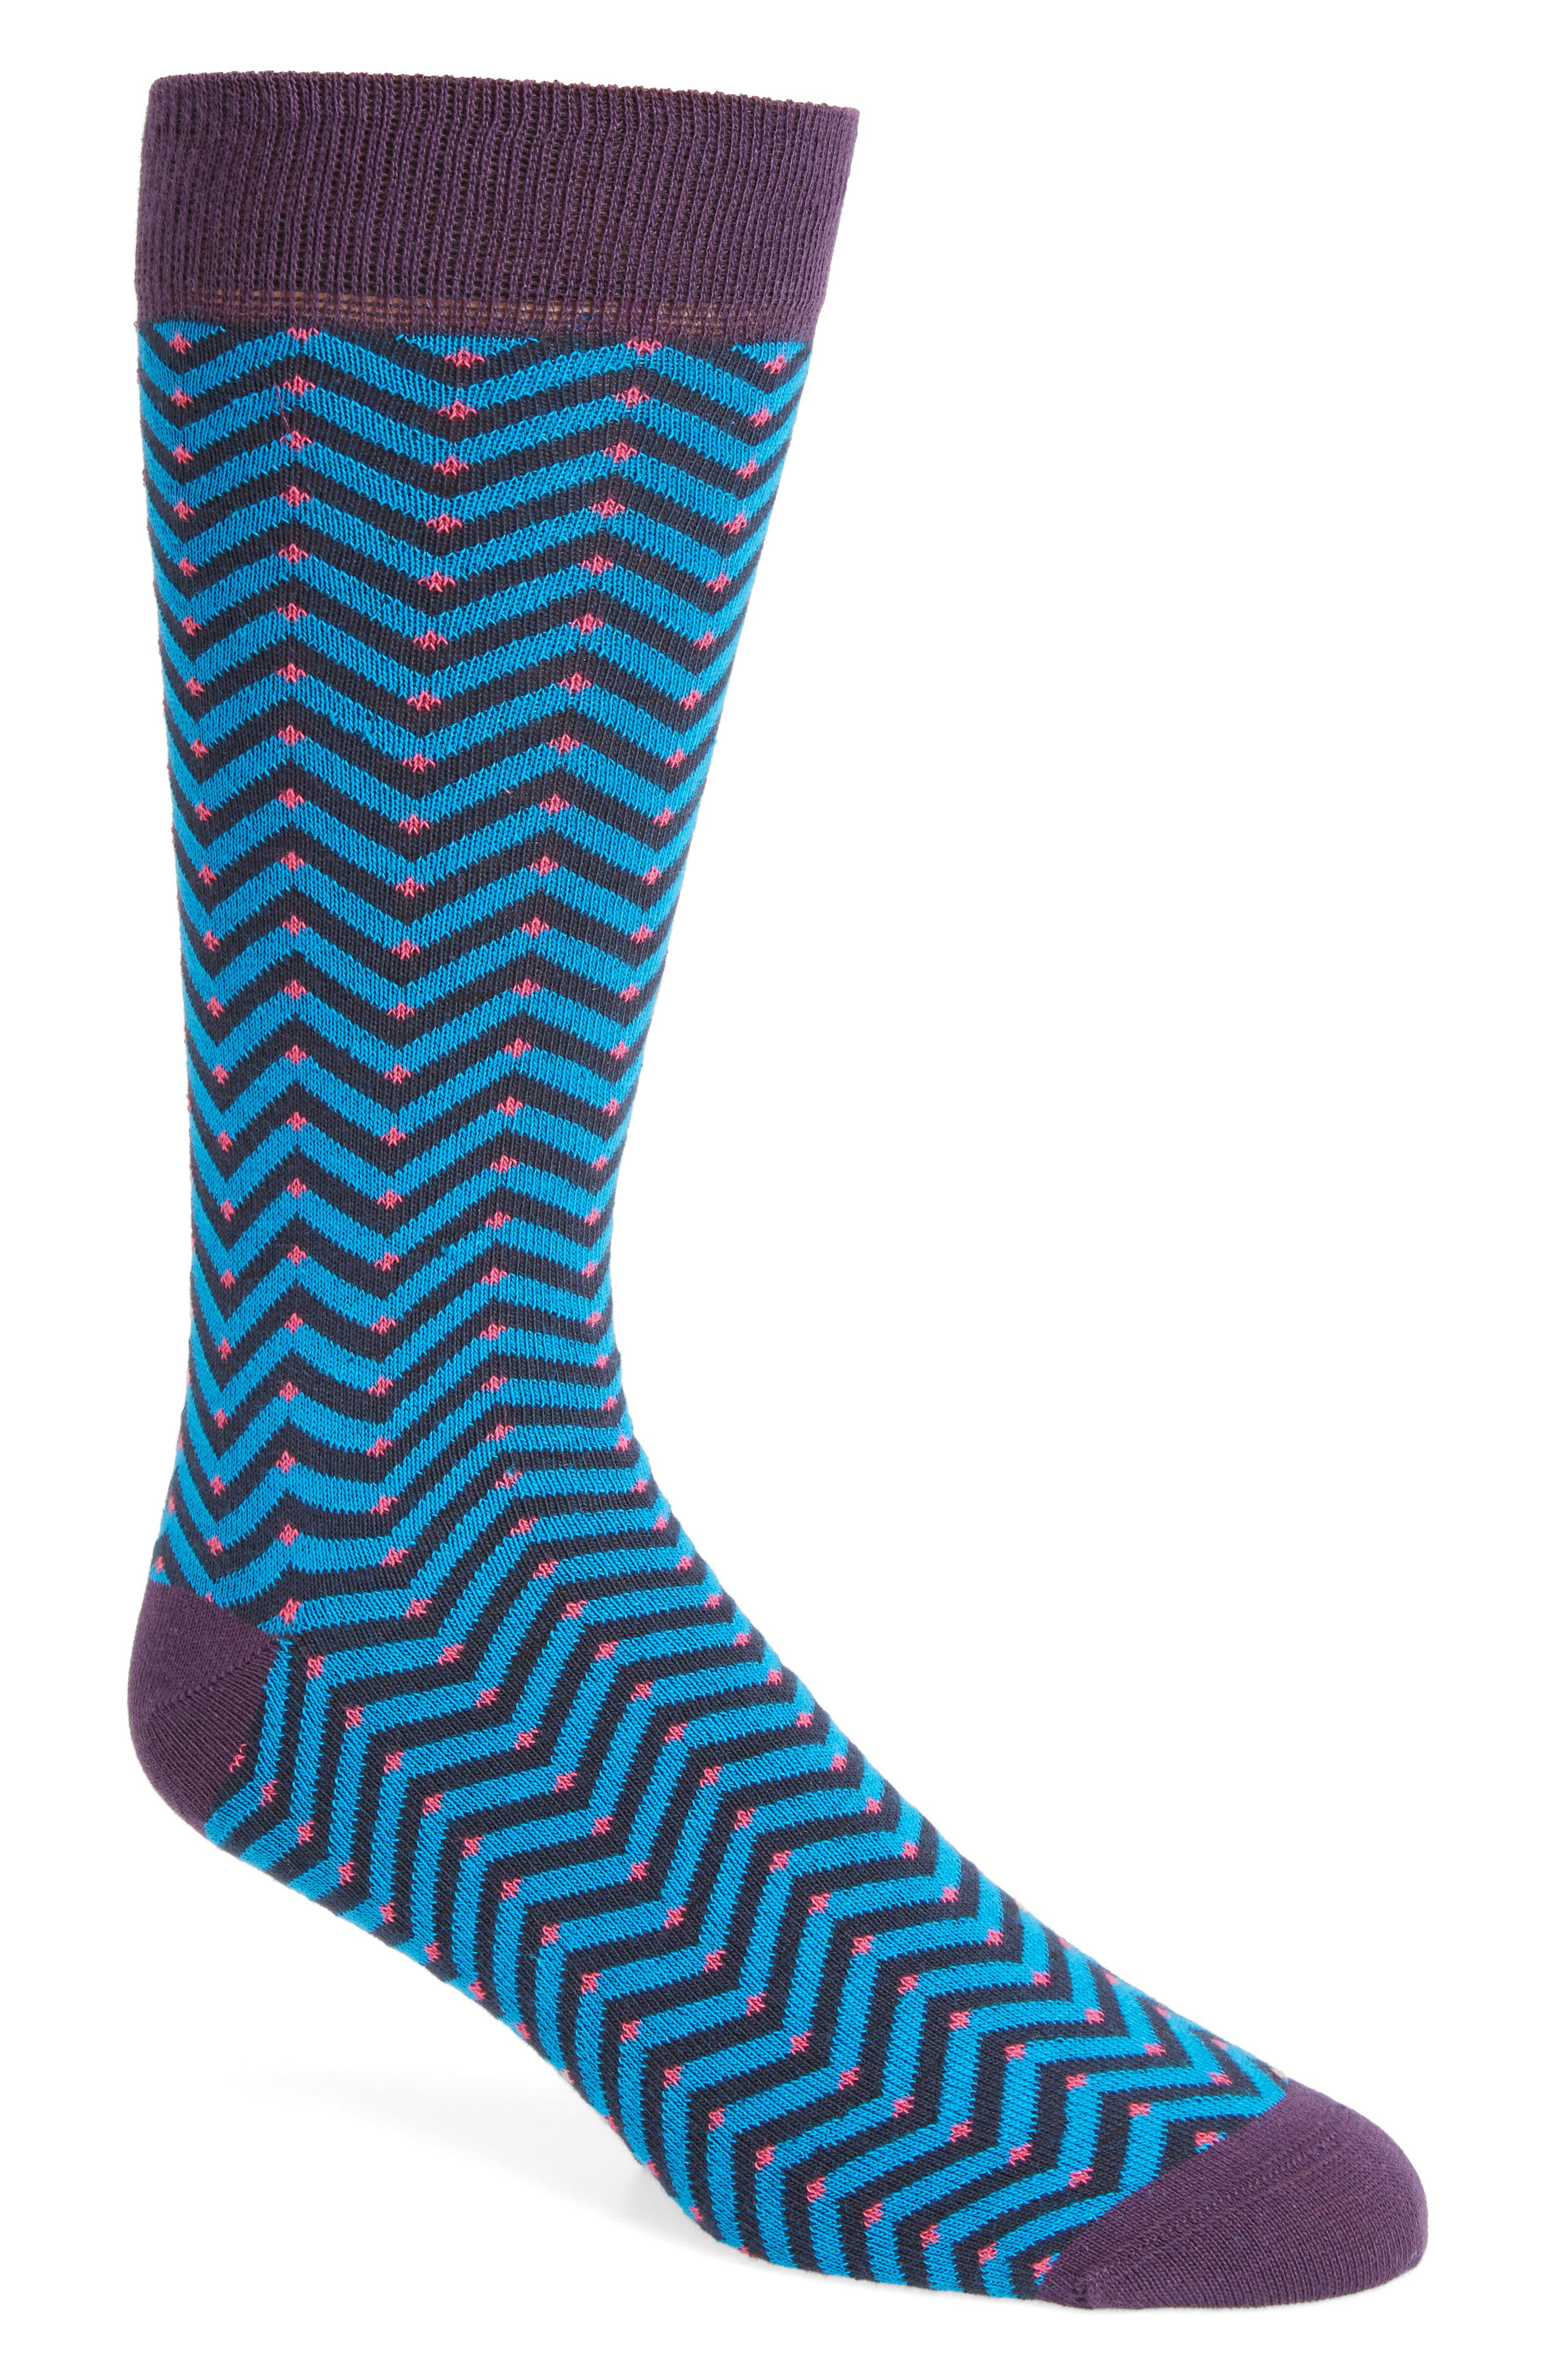 Chevron Stripe Socks,                         Main,                         color,